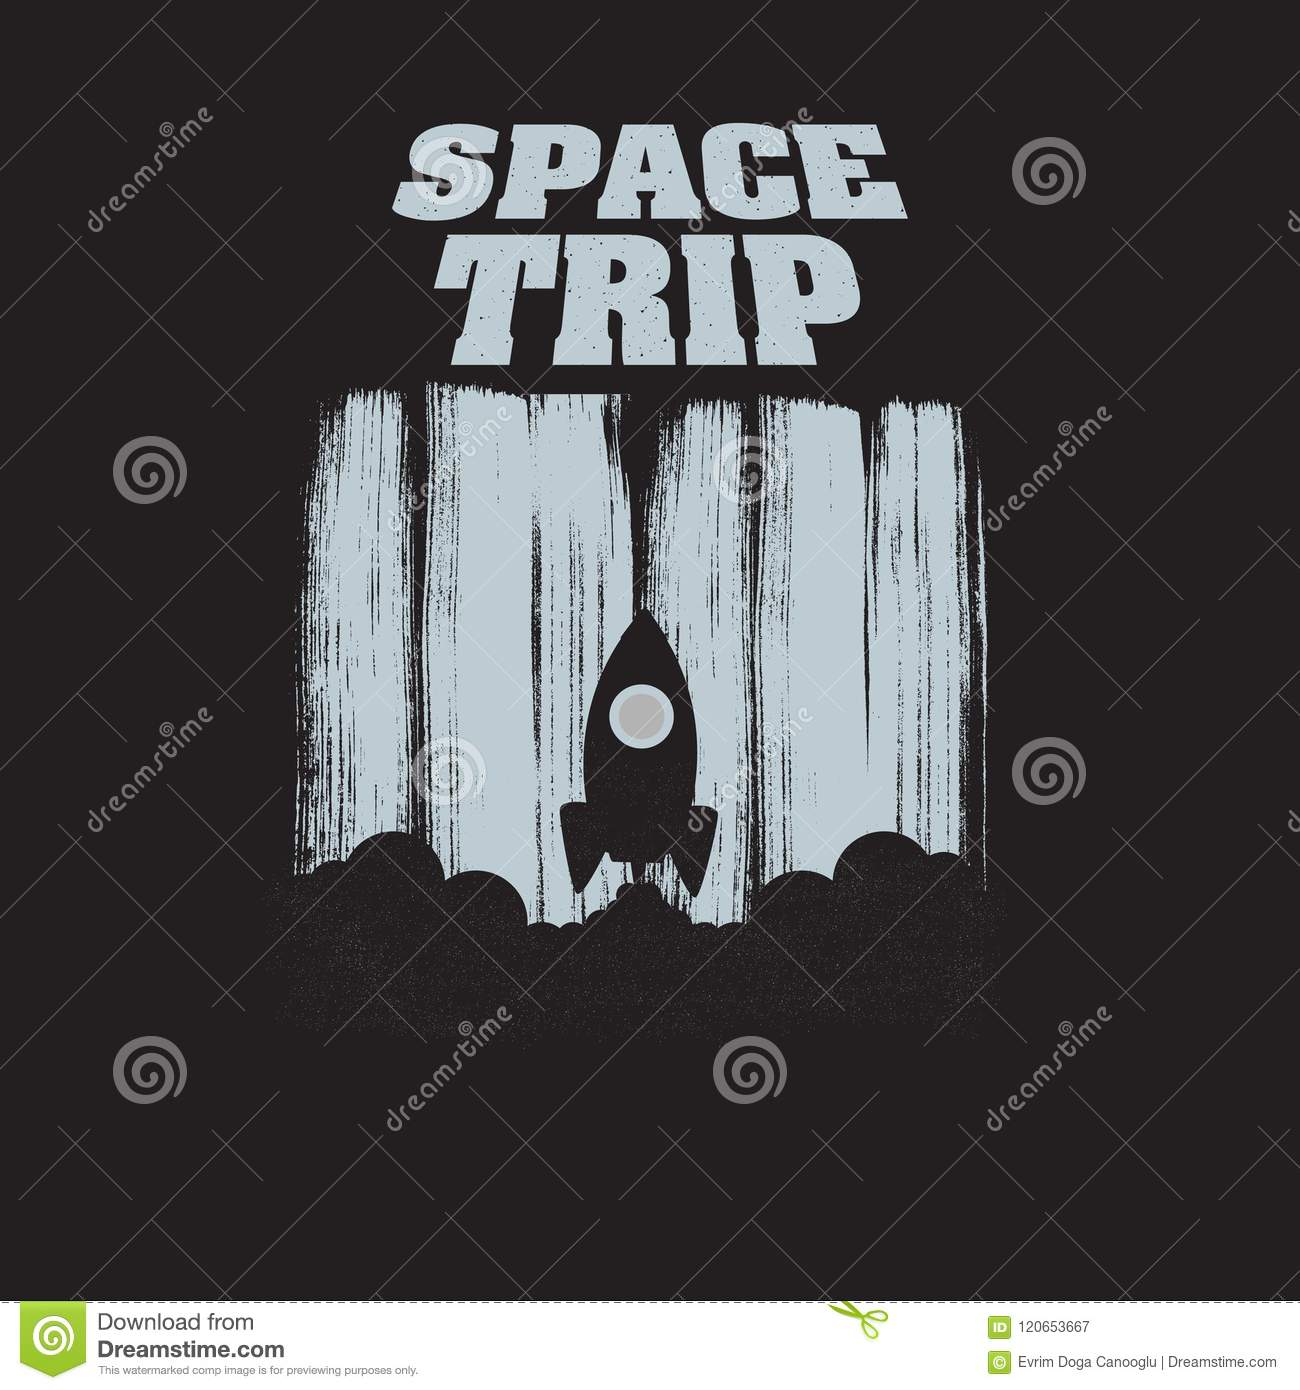 Space Trip vintage t-shirt typography. Vector illustration. EPS 10